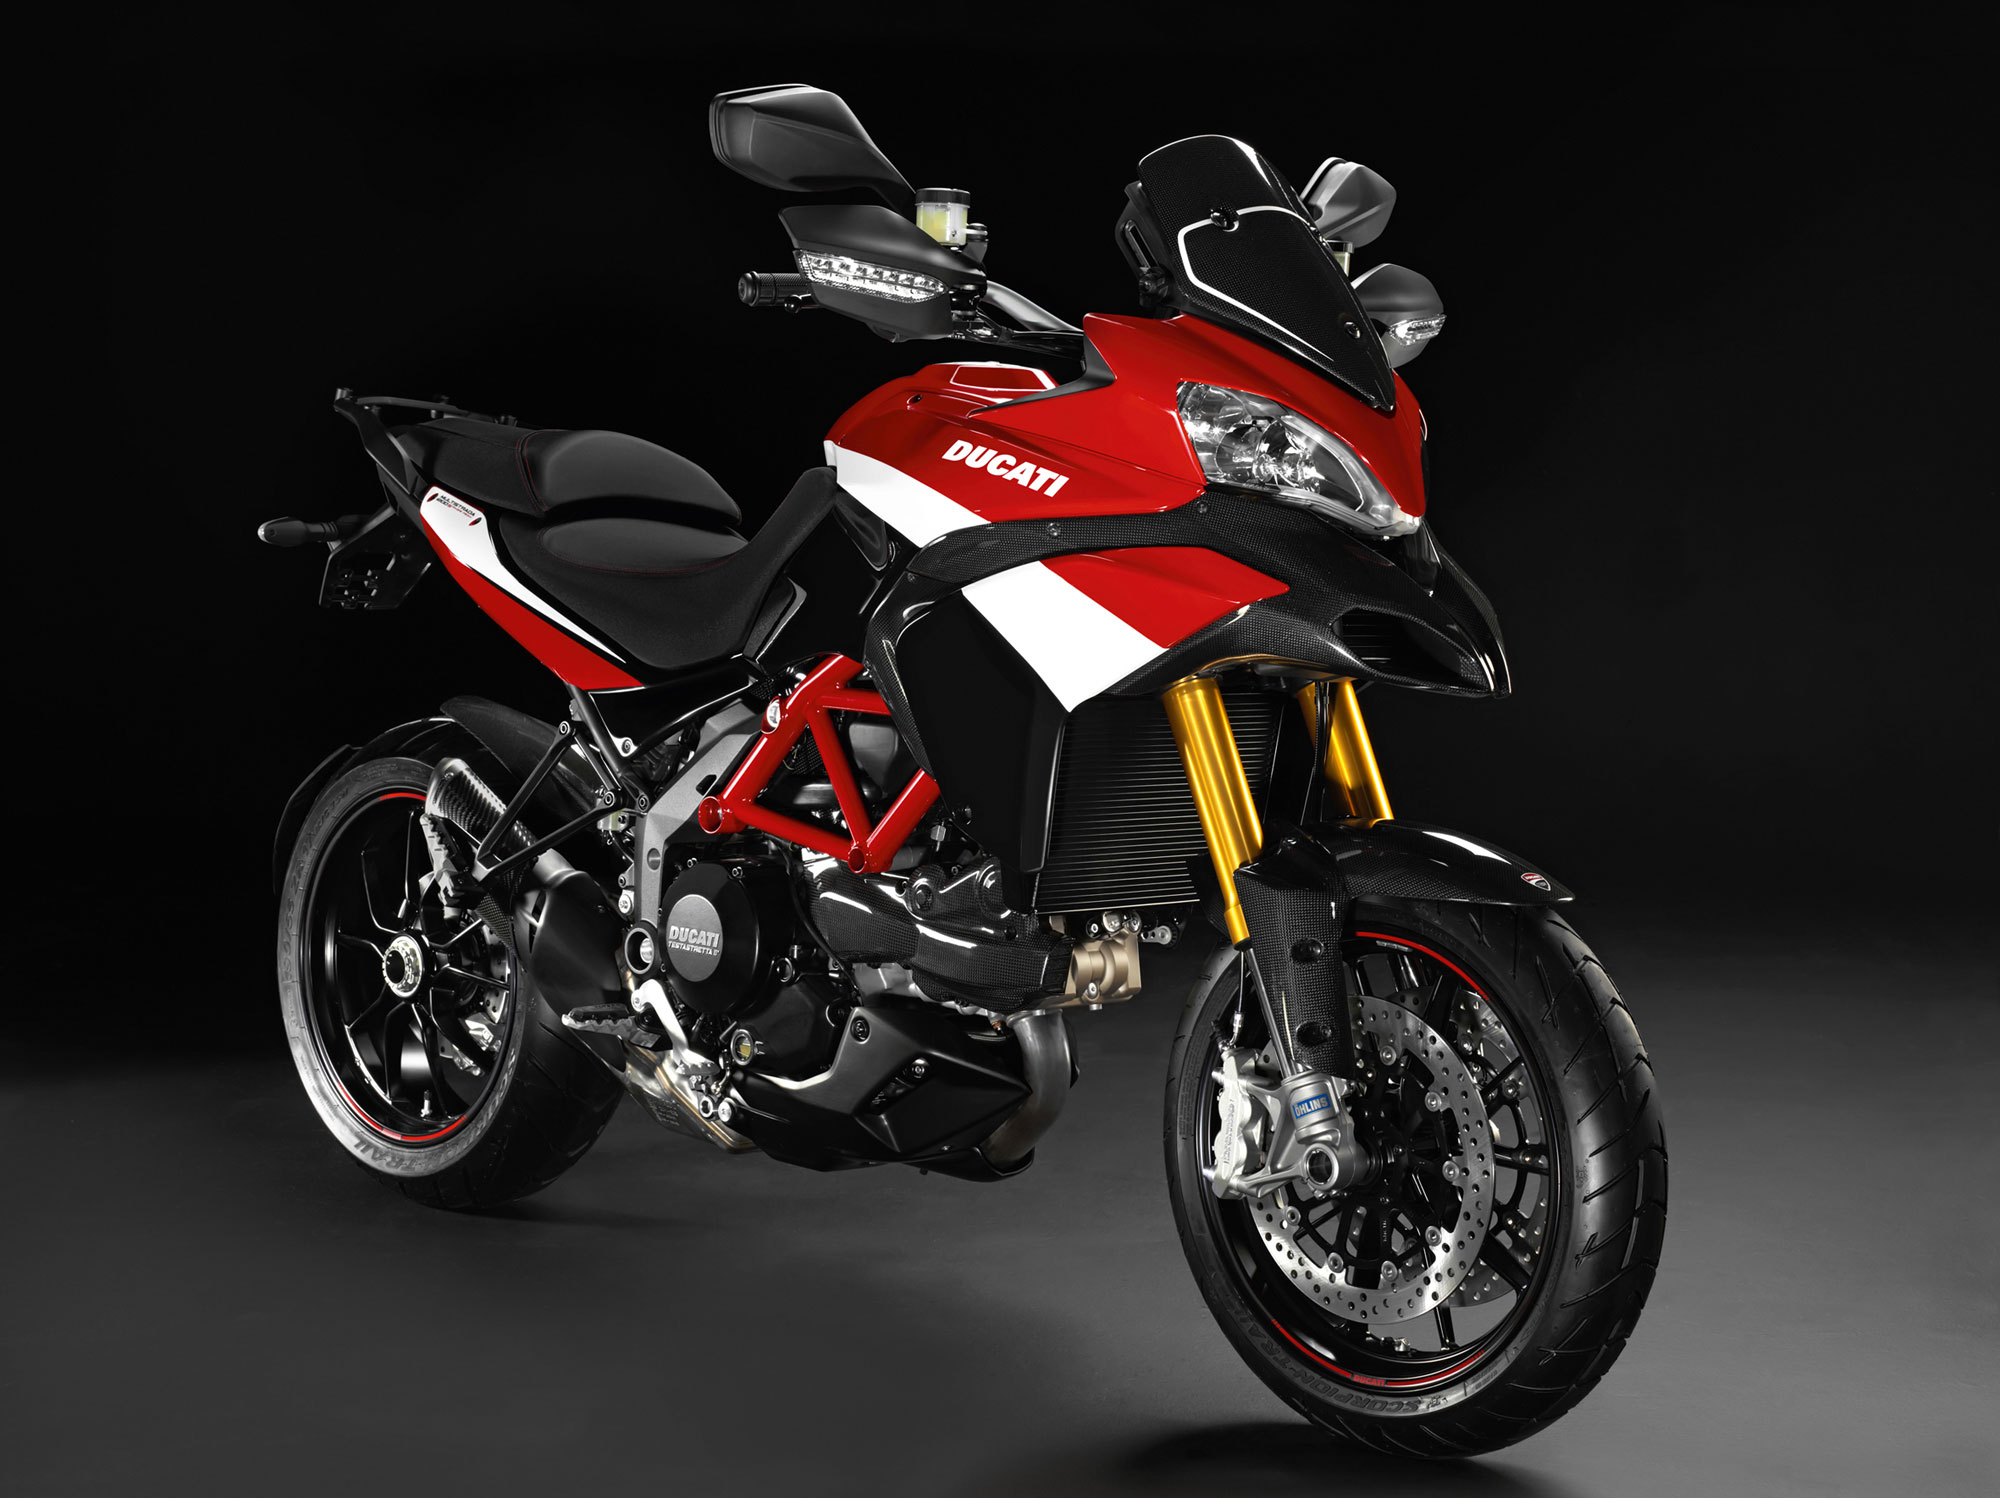 Ducati Multistrada 1200 S Pikes Peak Edition 2013 images #80015